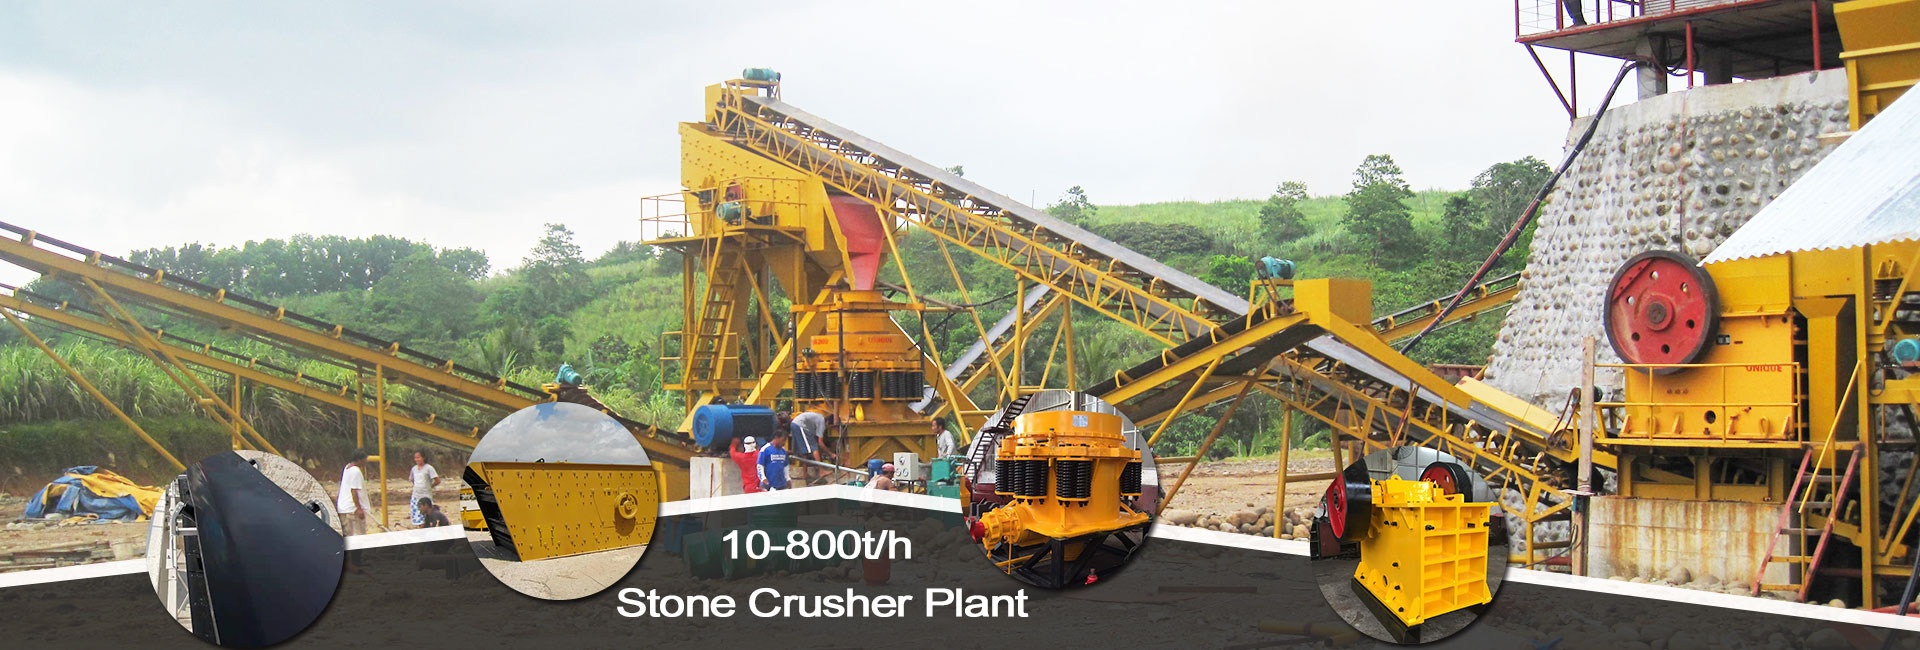 http://www.sinounique.com/product/list-2-stone-crushing-plant.html